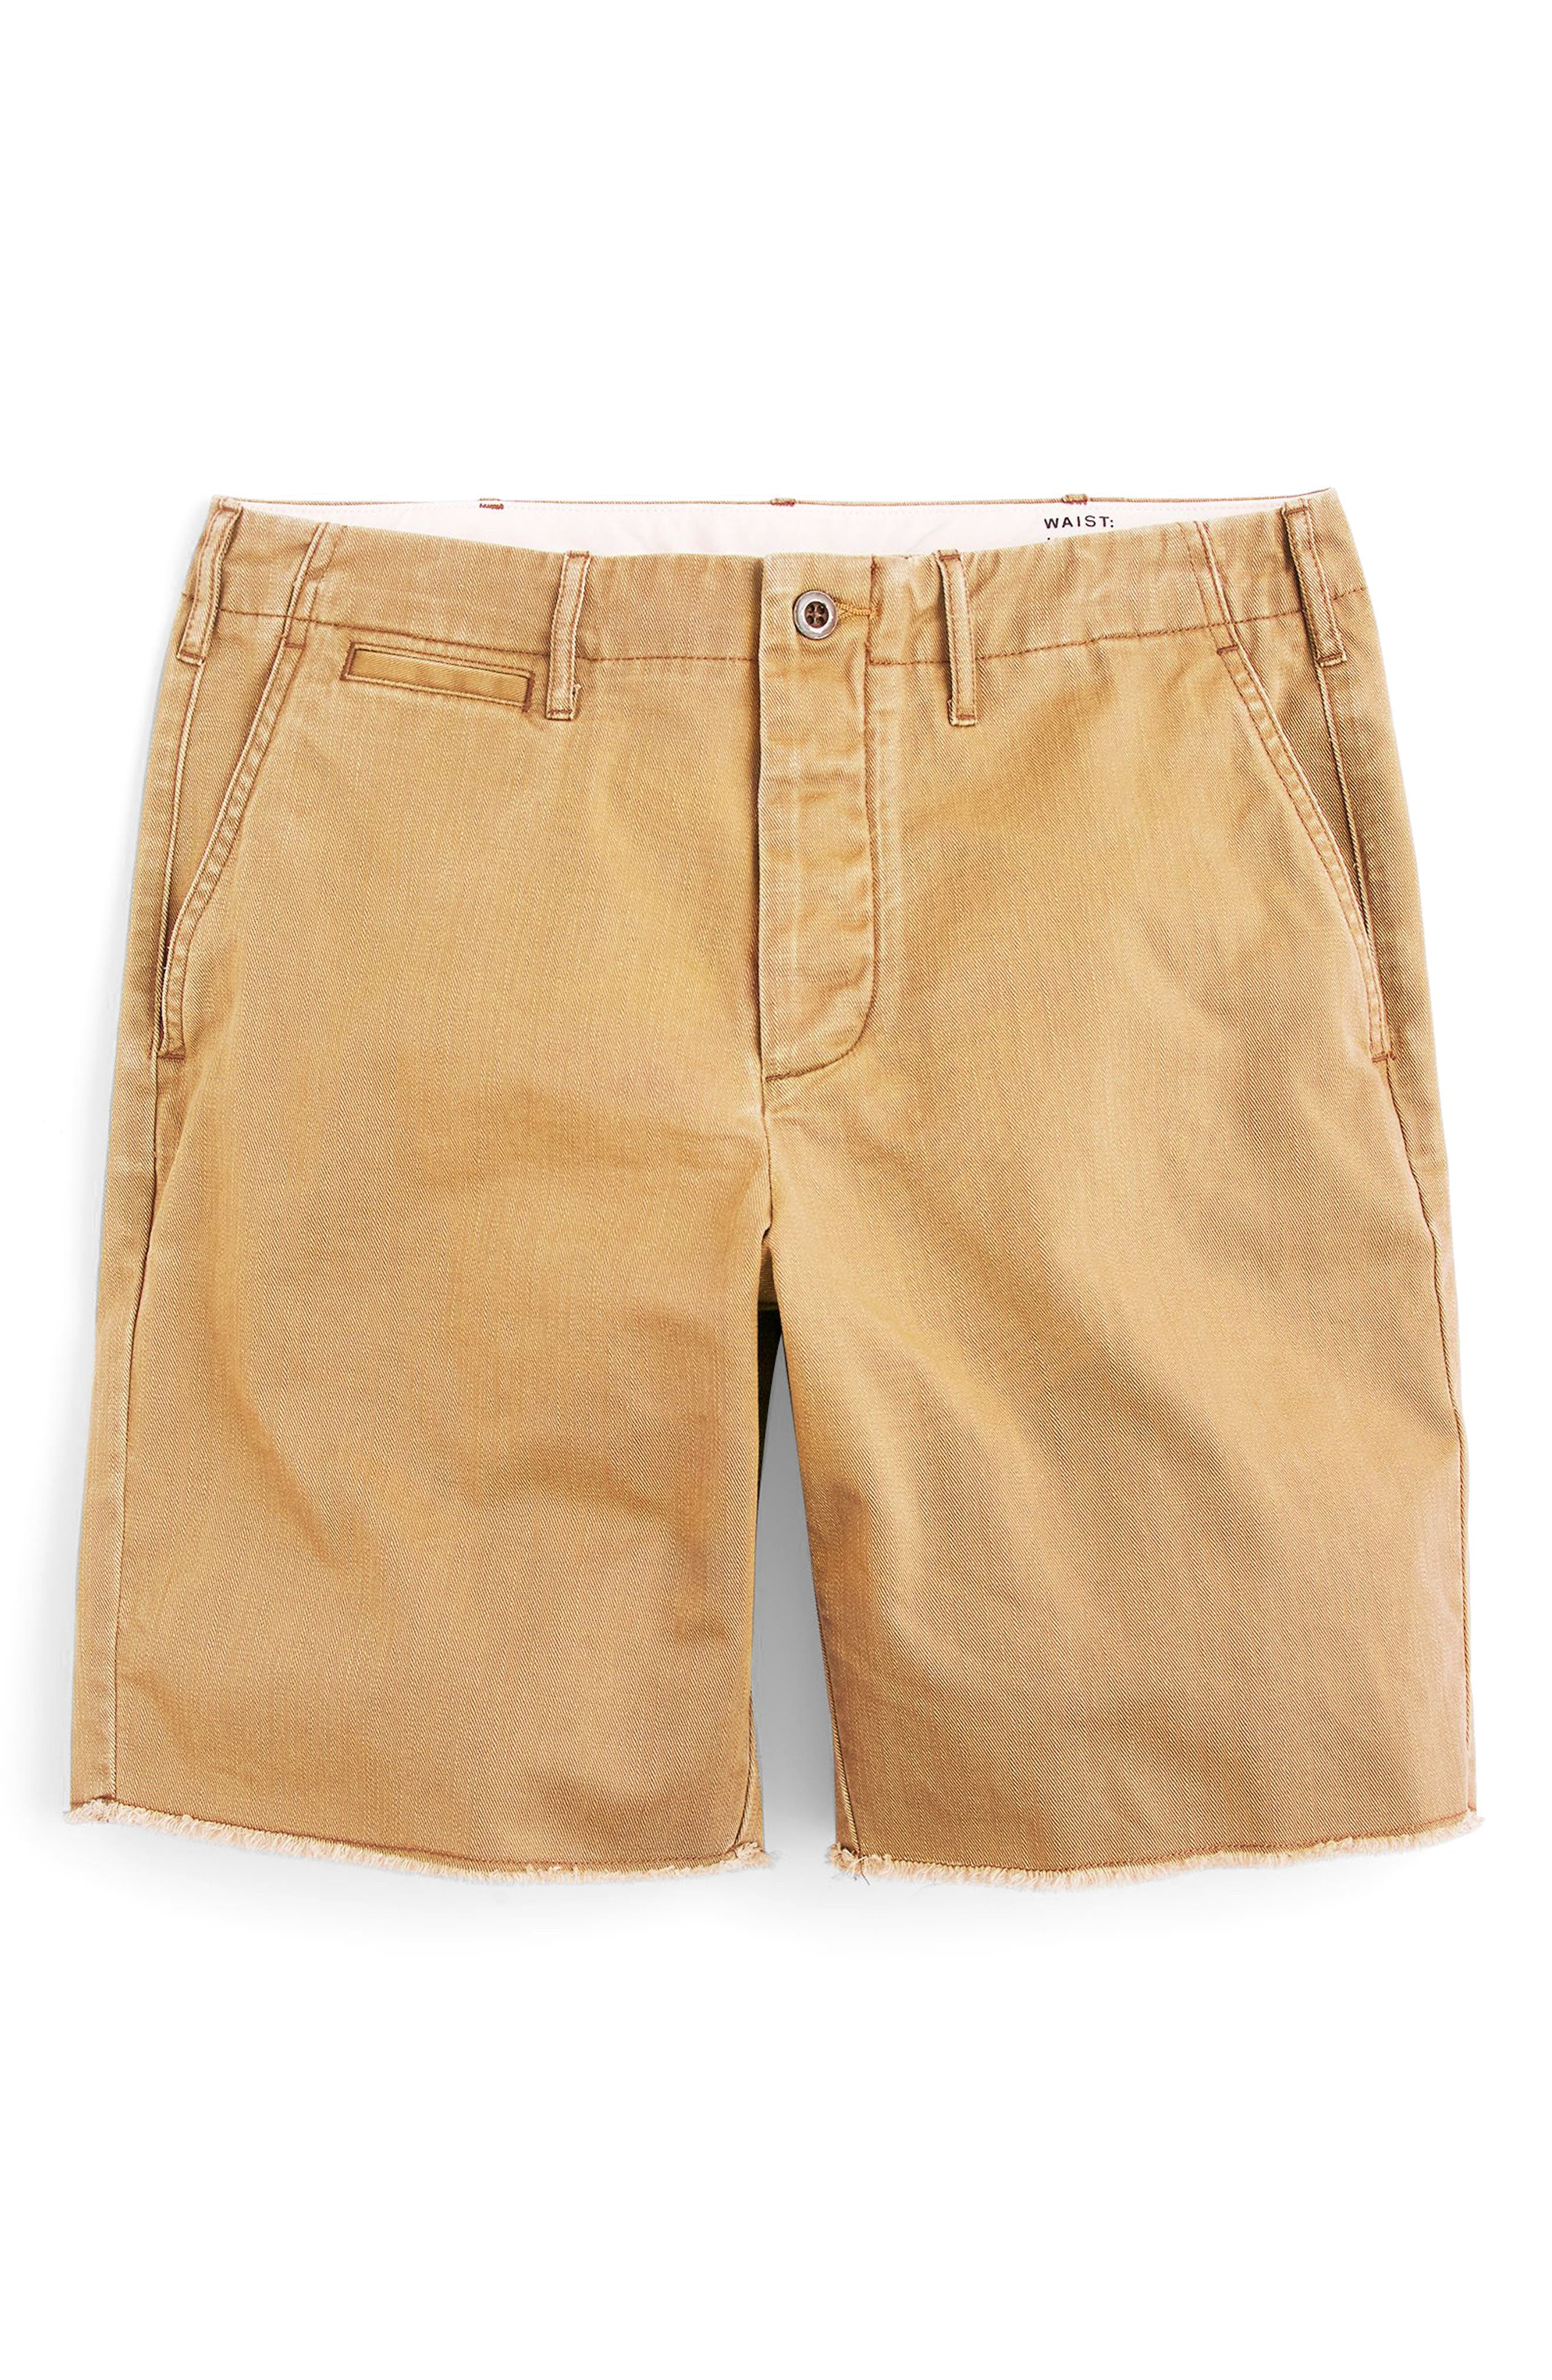 Distressed Officer's Shorts,                             Alternate thumbnail 4, color,                             251